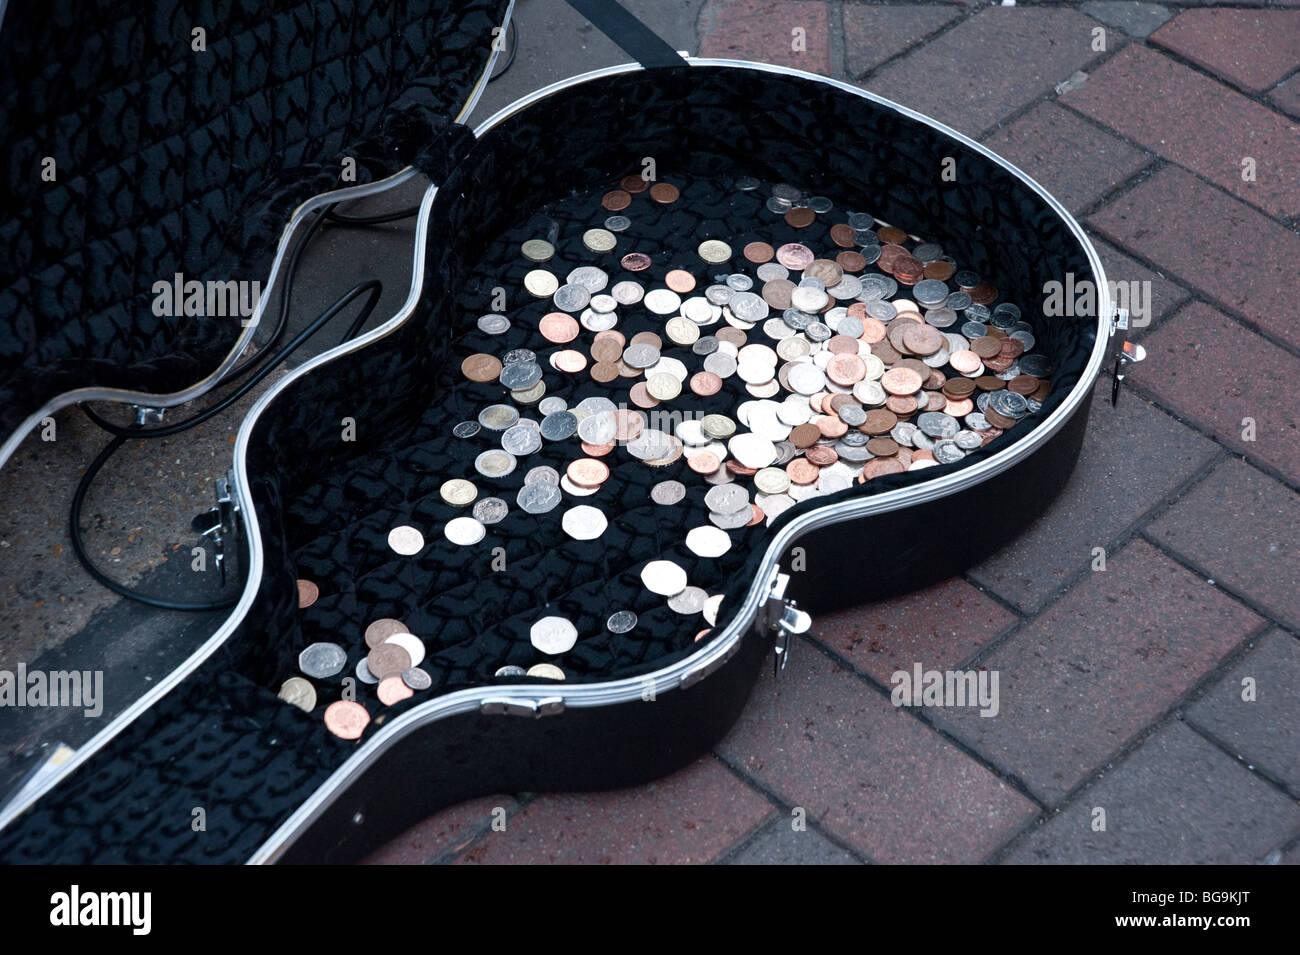 Coins in busker's guitar case, London, England, UK - Stock Image